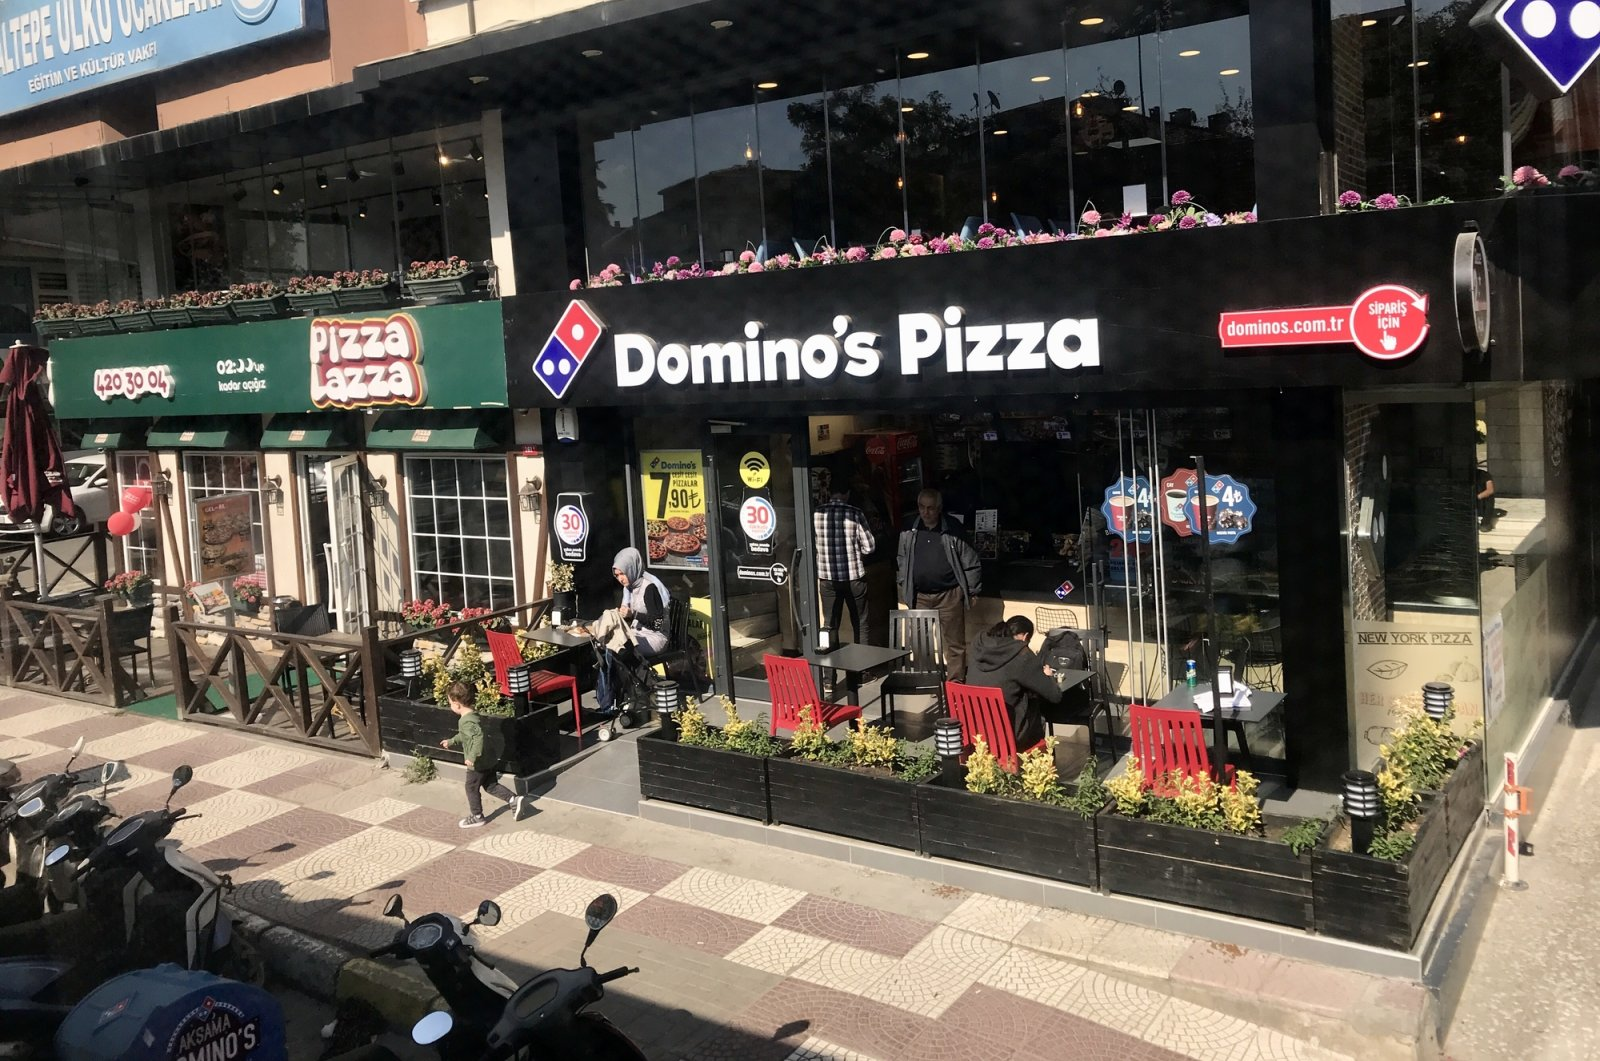 A Domino's Pizza branch, run by DP Eurasia, is seen in the Maltepe district of Istanbul, Turkey, Oct. 11, 2017. (iStock Photo)